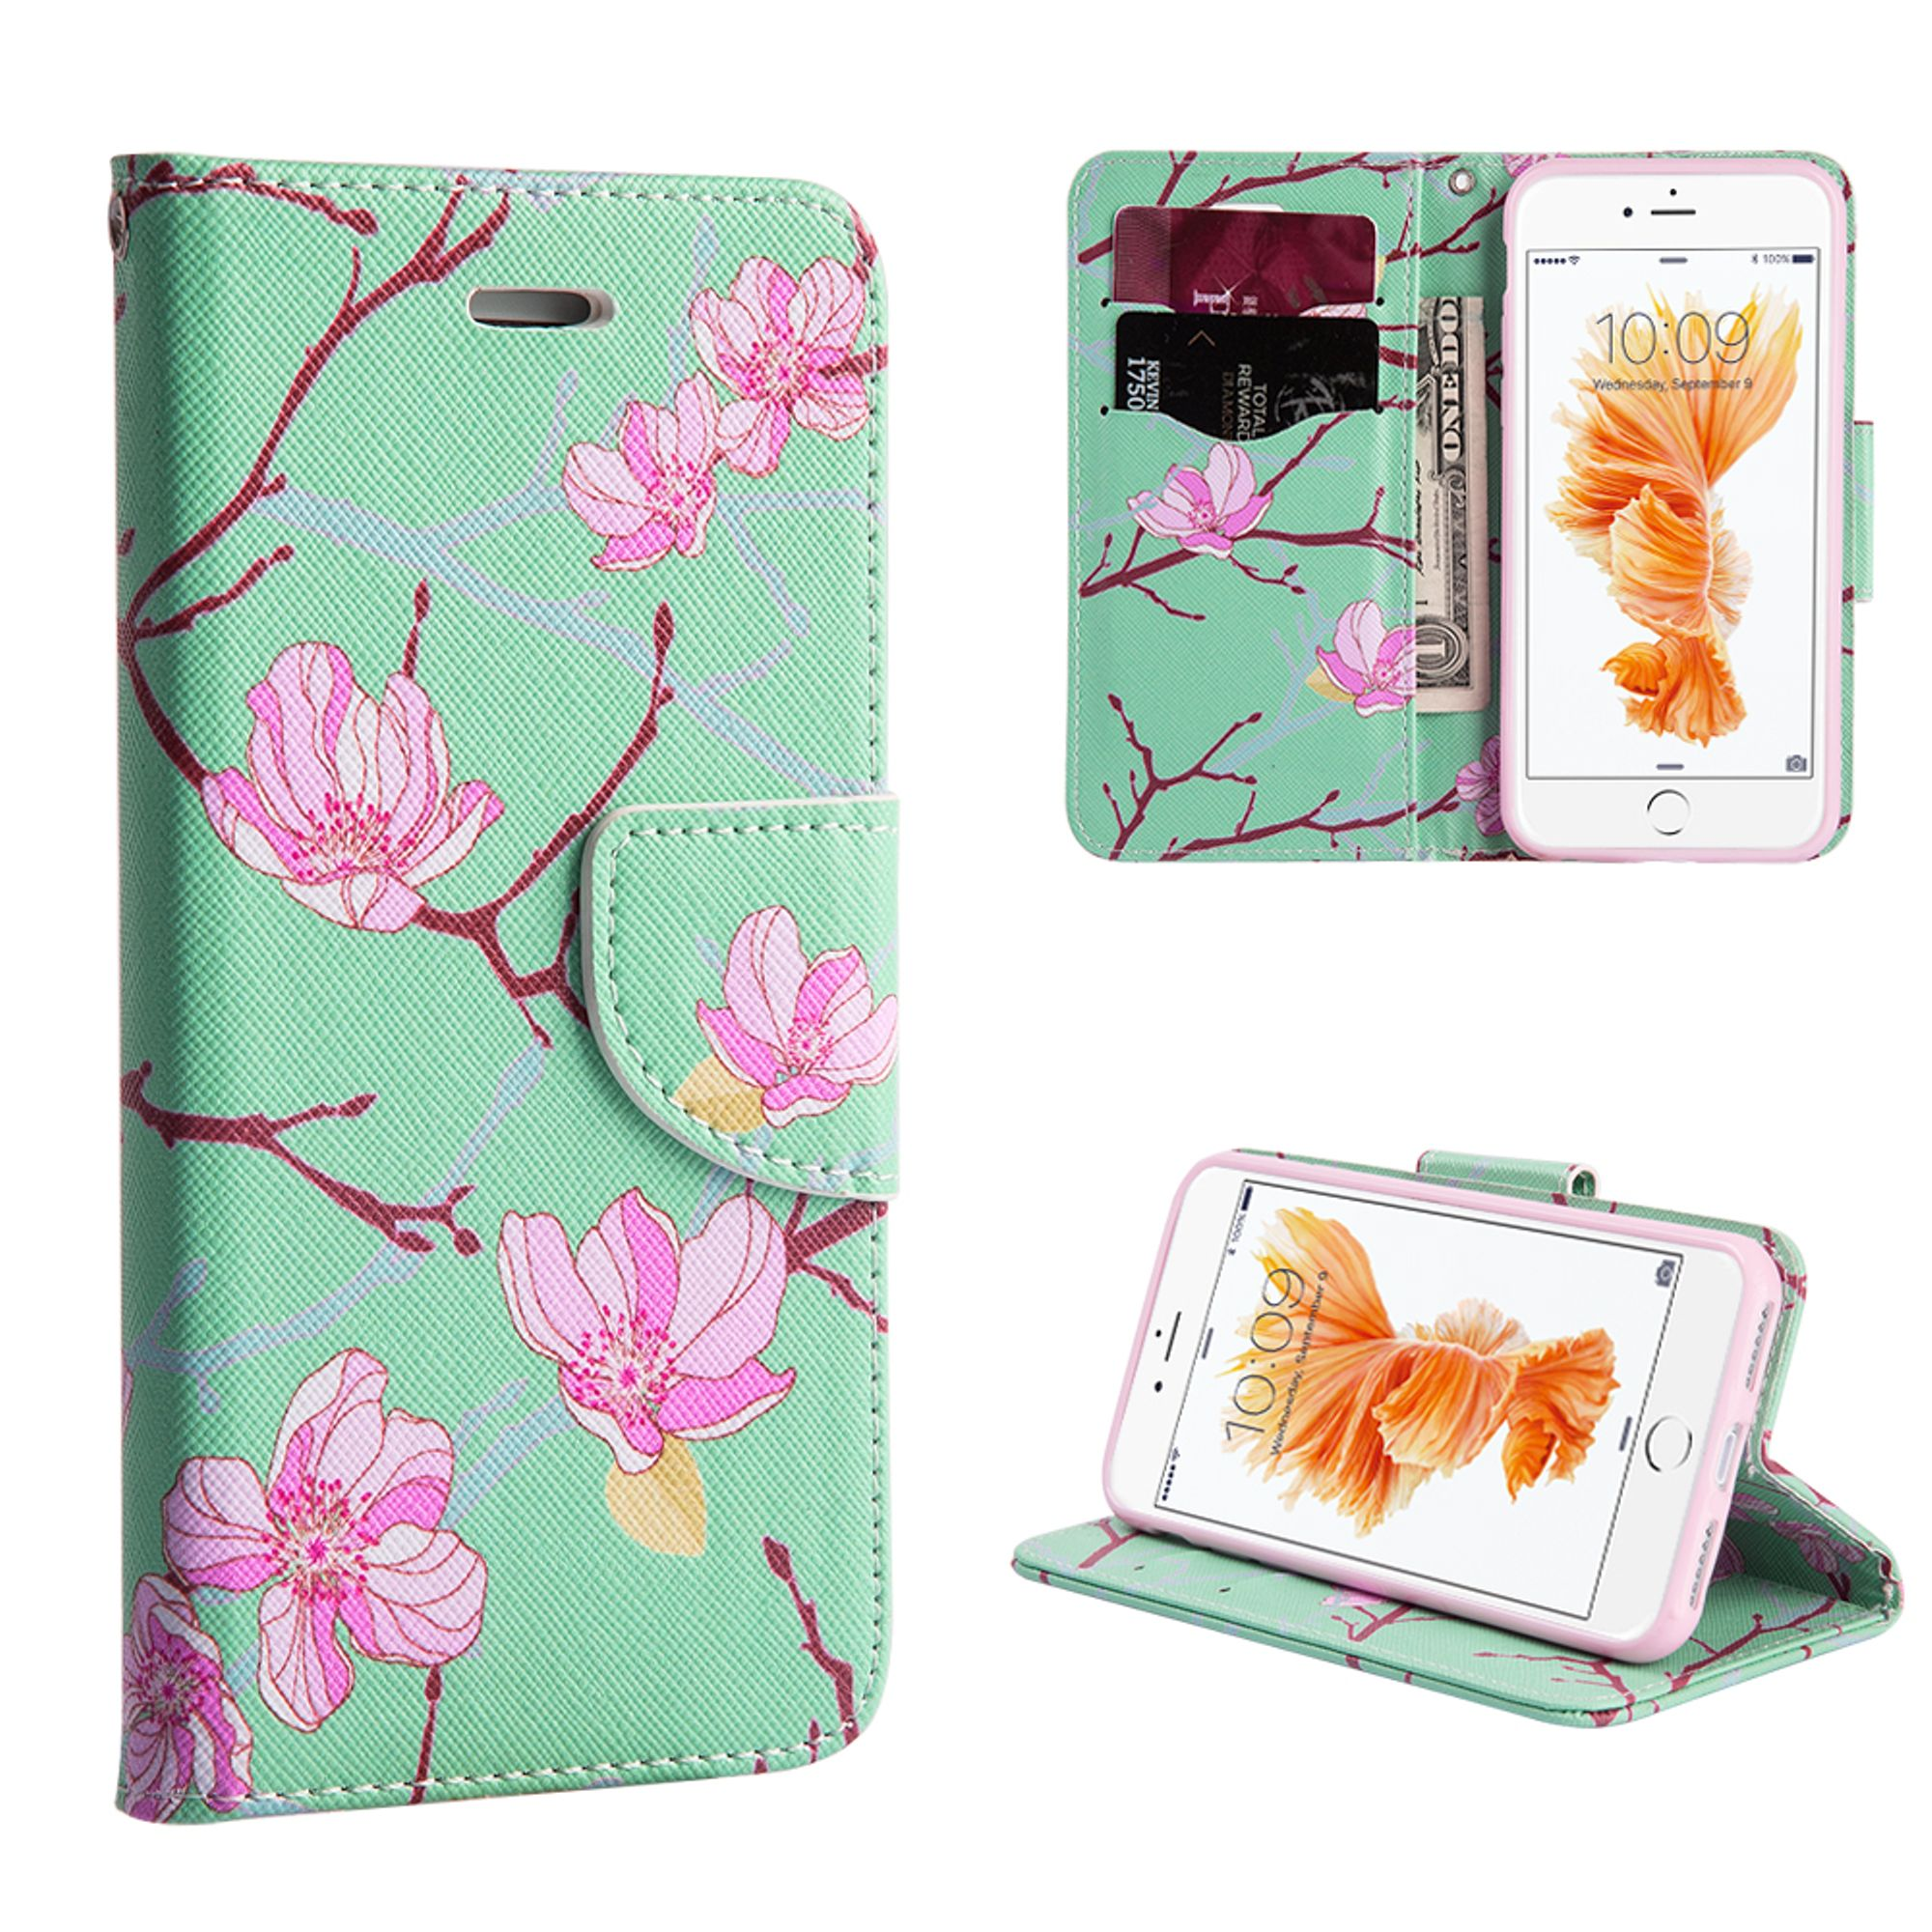 Insten Japanese Blossom Flower Flip Leather Wallet Fabric Floral Case with Card slot for Apple iPhone 8 Plus / iPhone 7 Plus - Green/Pink